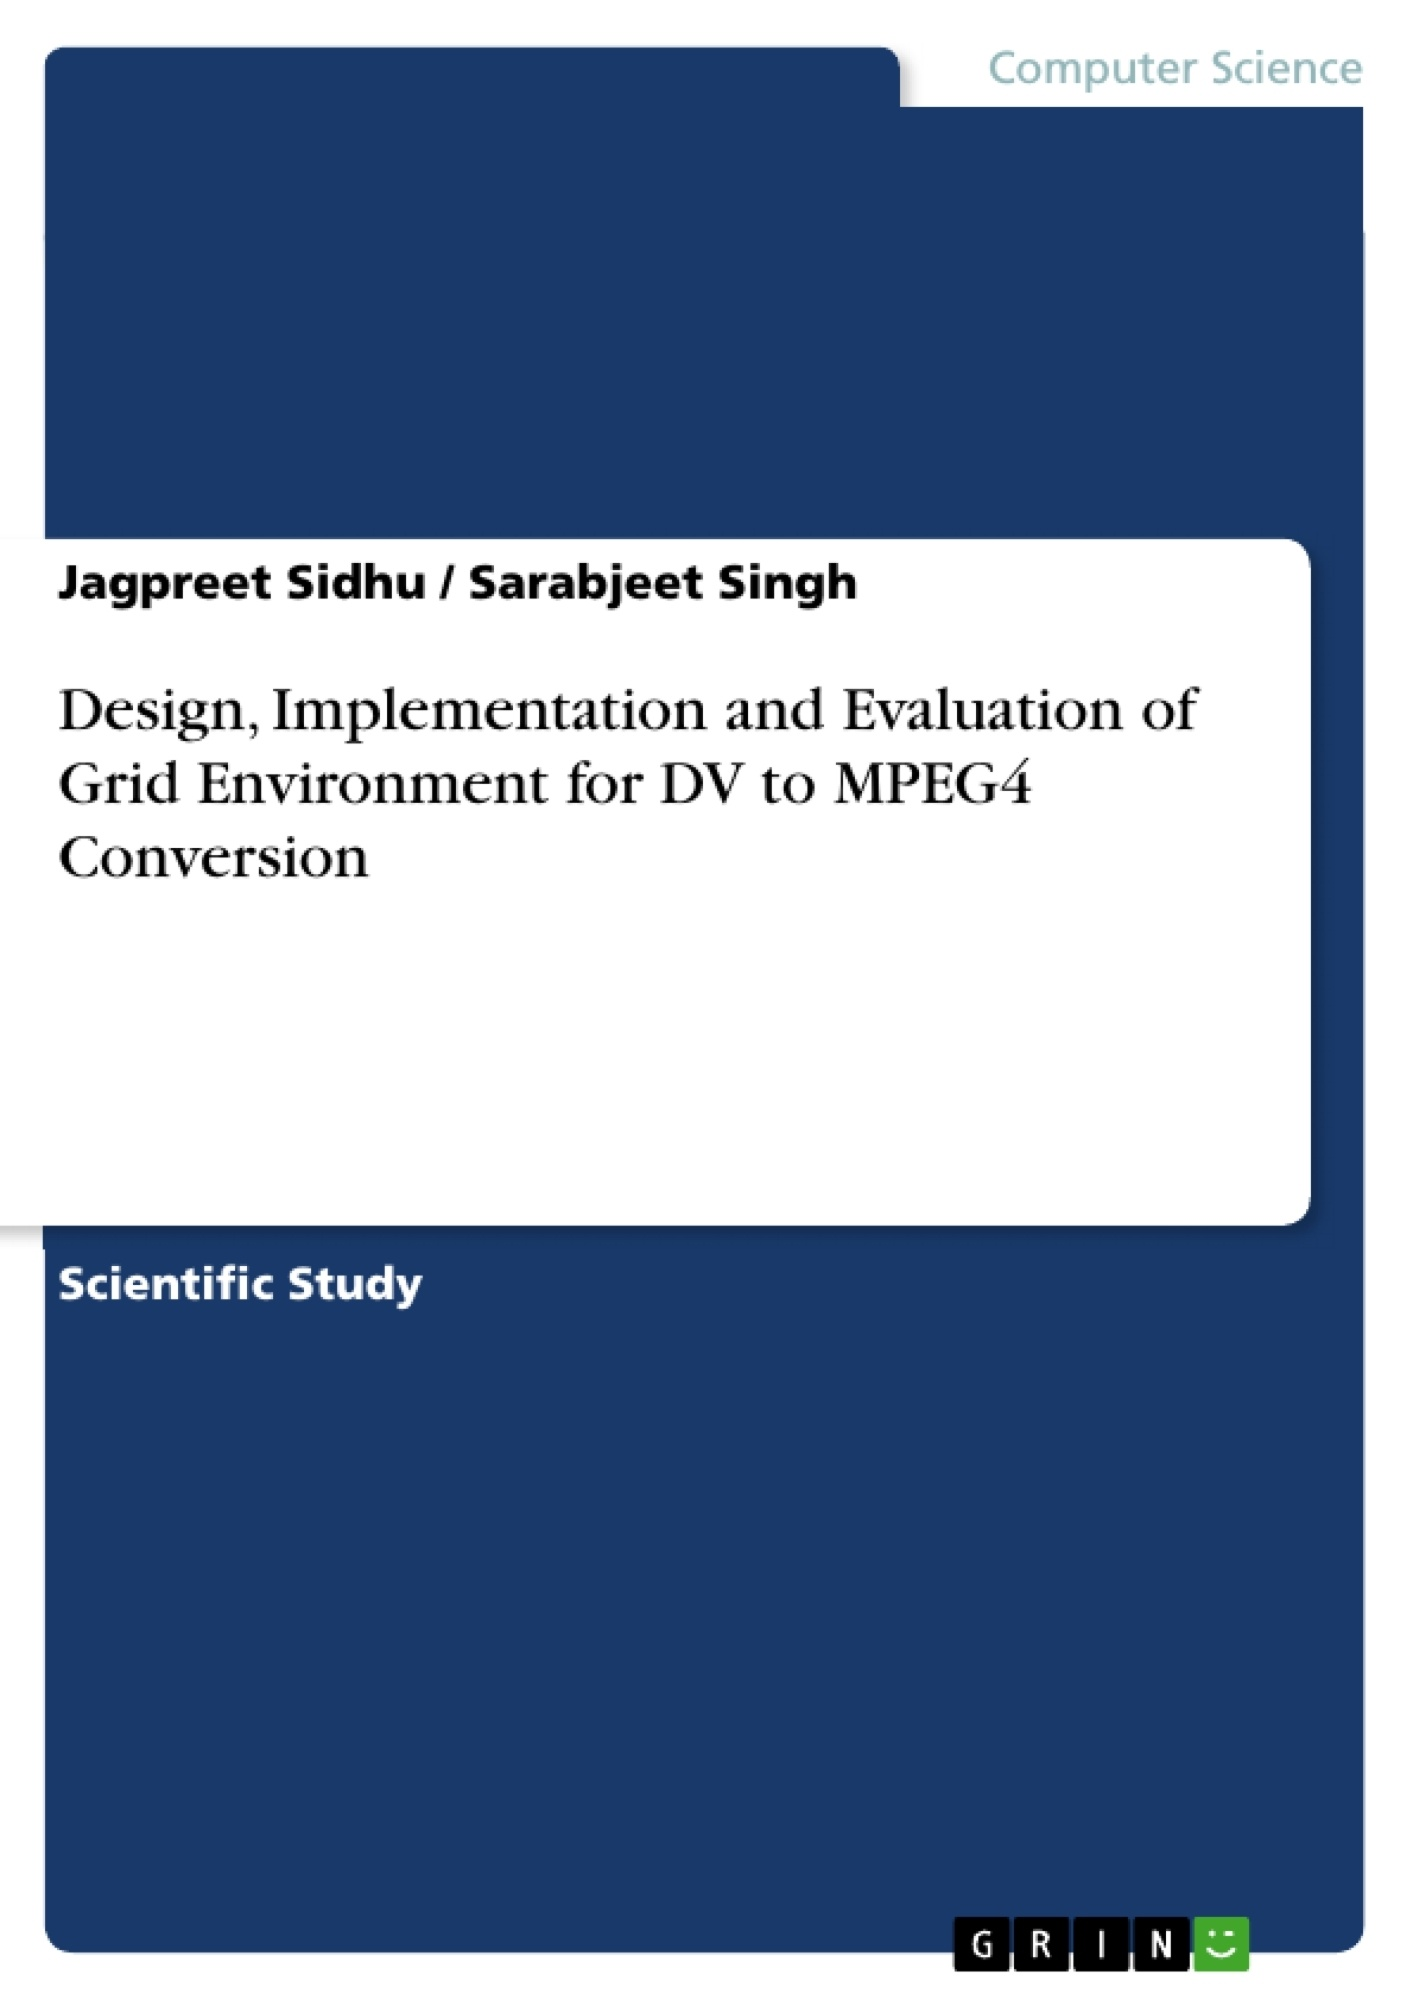 Title: Design, Implementation and Evaluation of Grid Environment for DV to MPEG4 Conversion